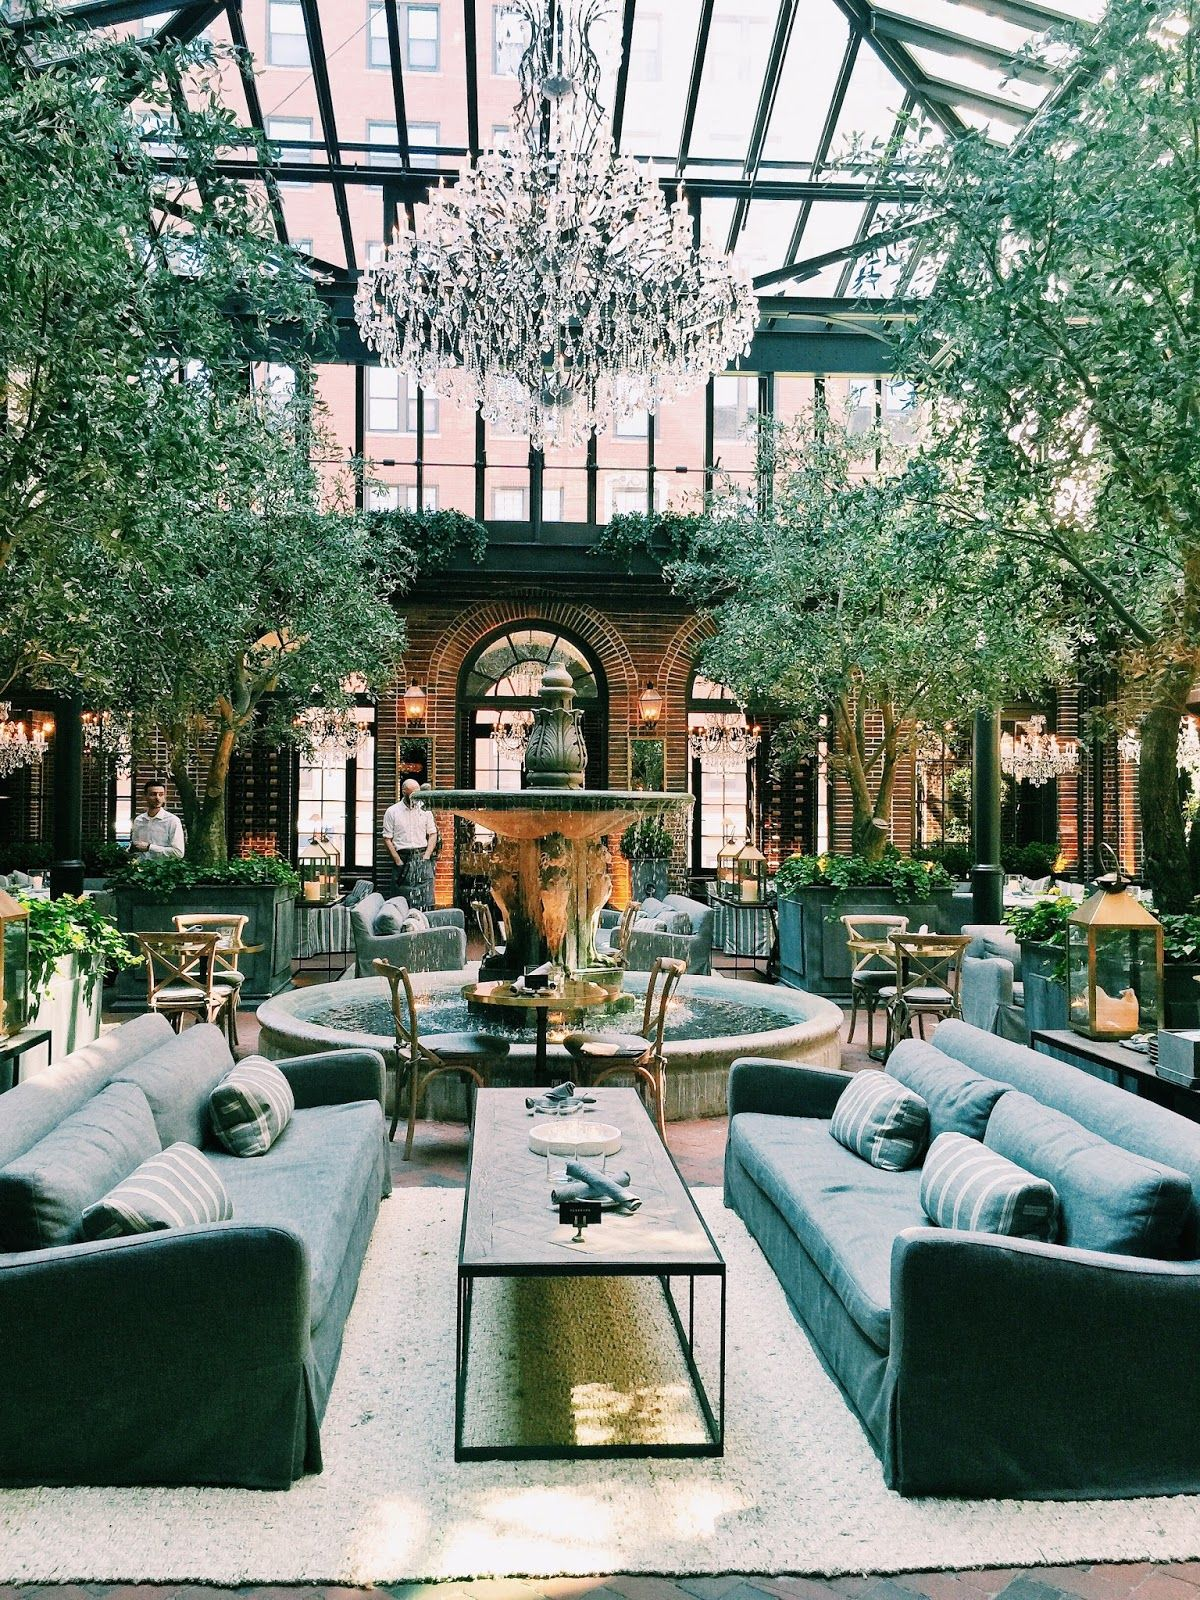 Restoration Hardware Cafe : Arts cafe in the restoration hardware chicago